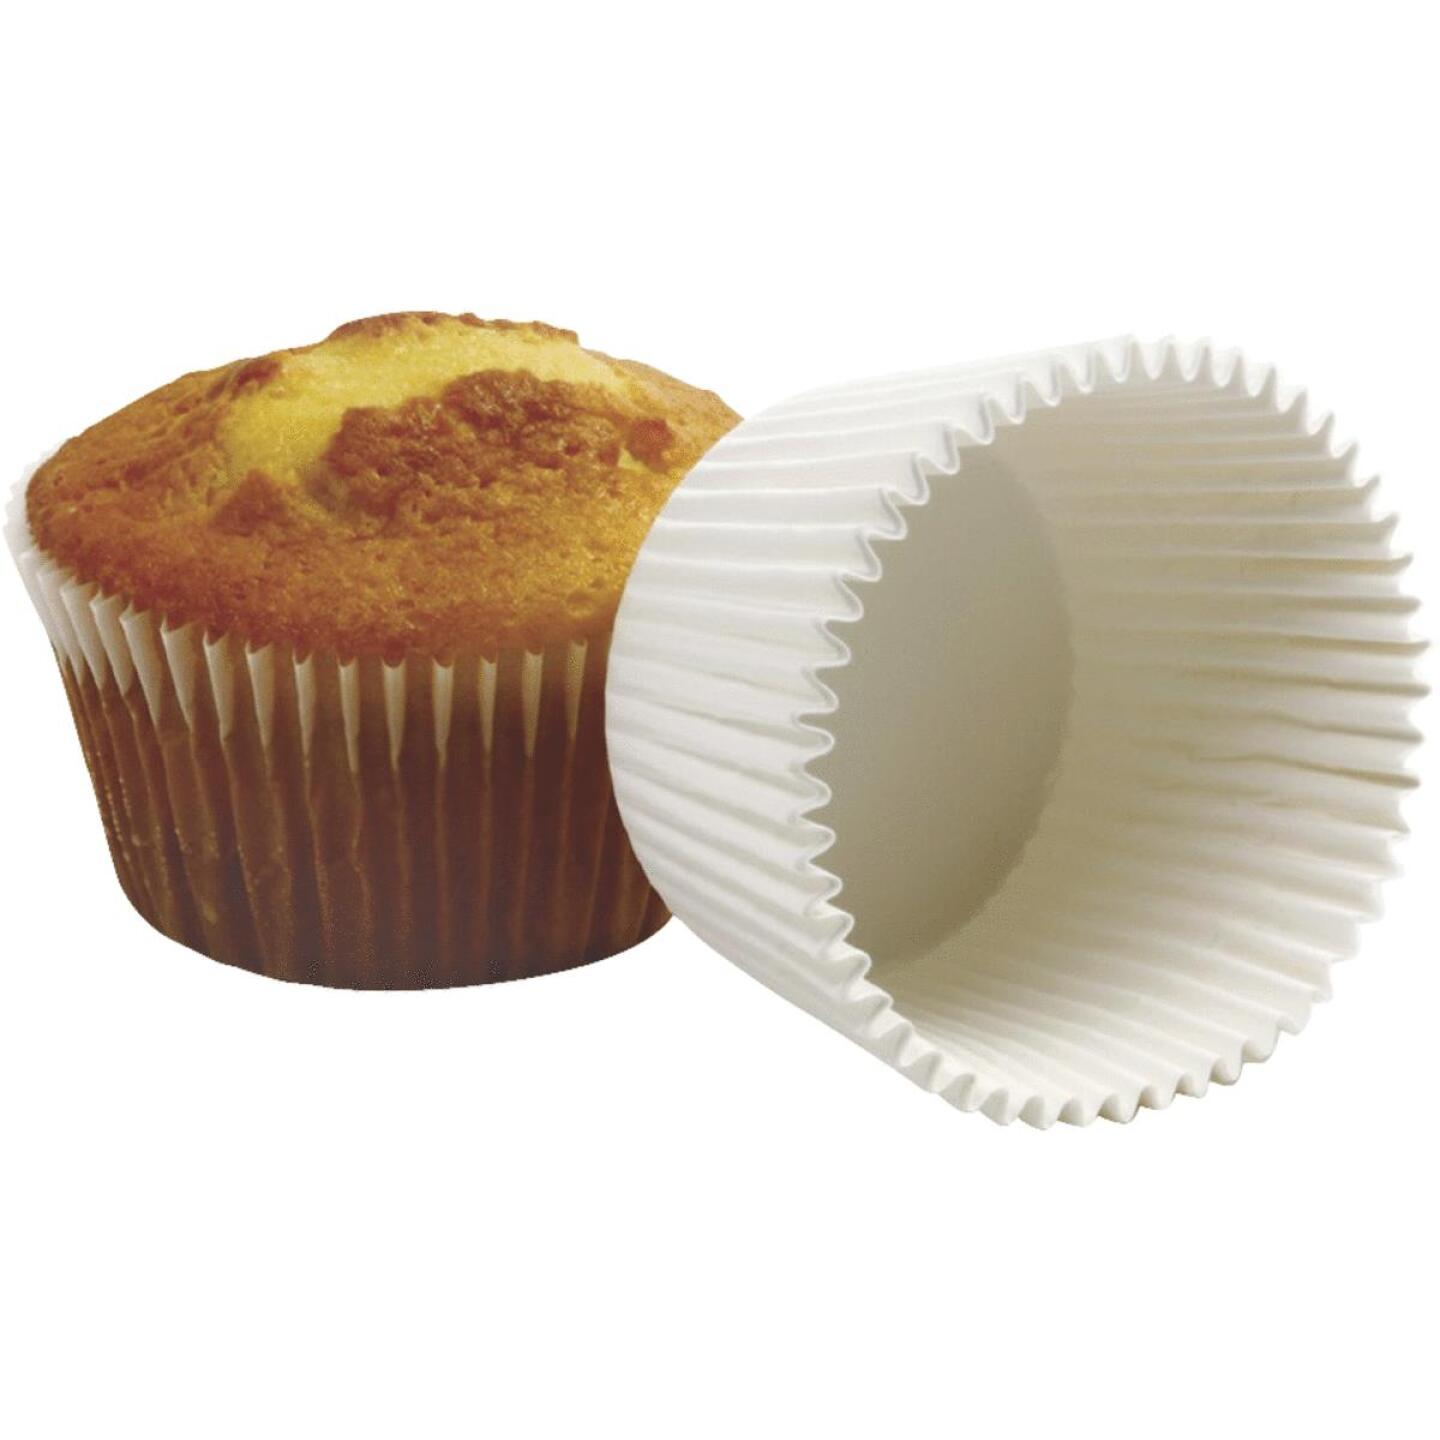 Norpro 2 In. Muffin Baking Cup (75-Count) Image 1